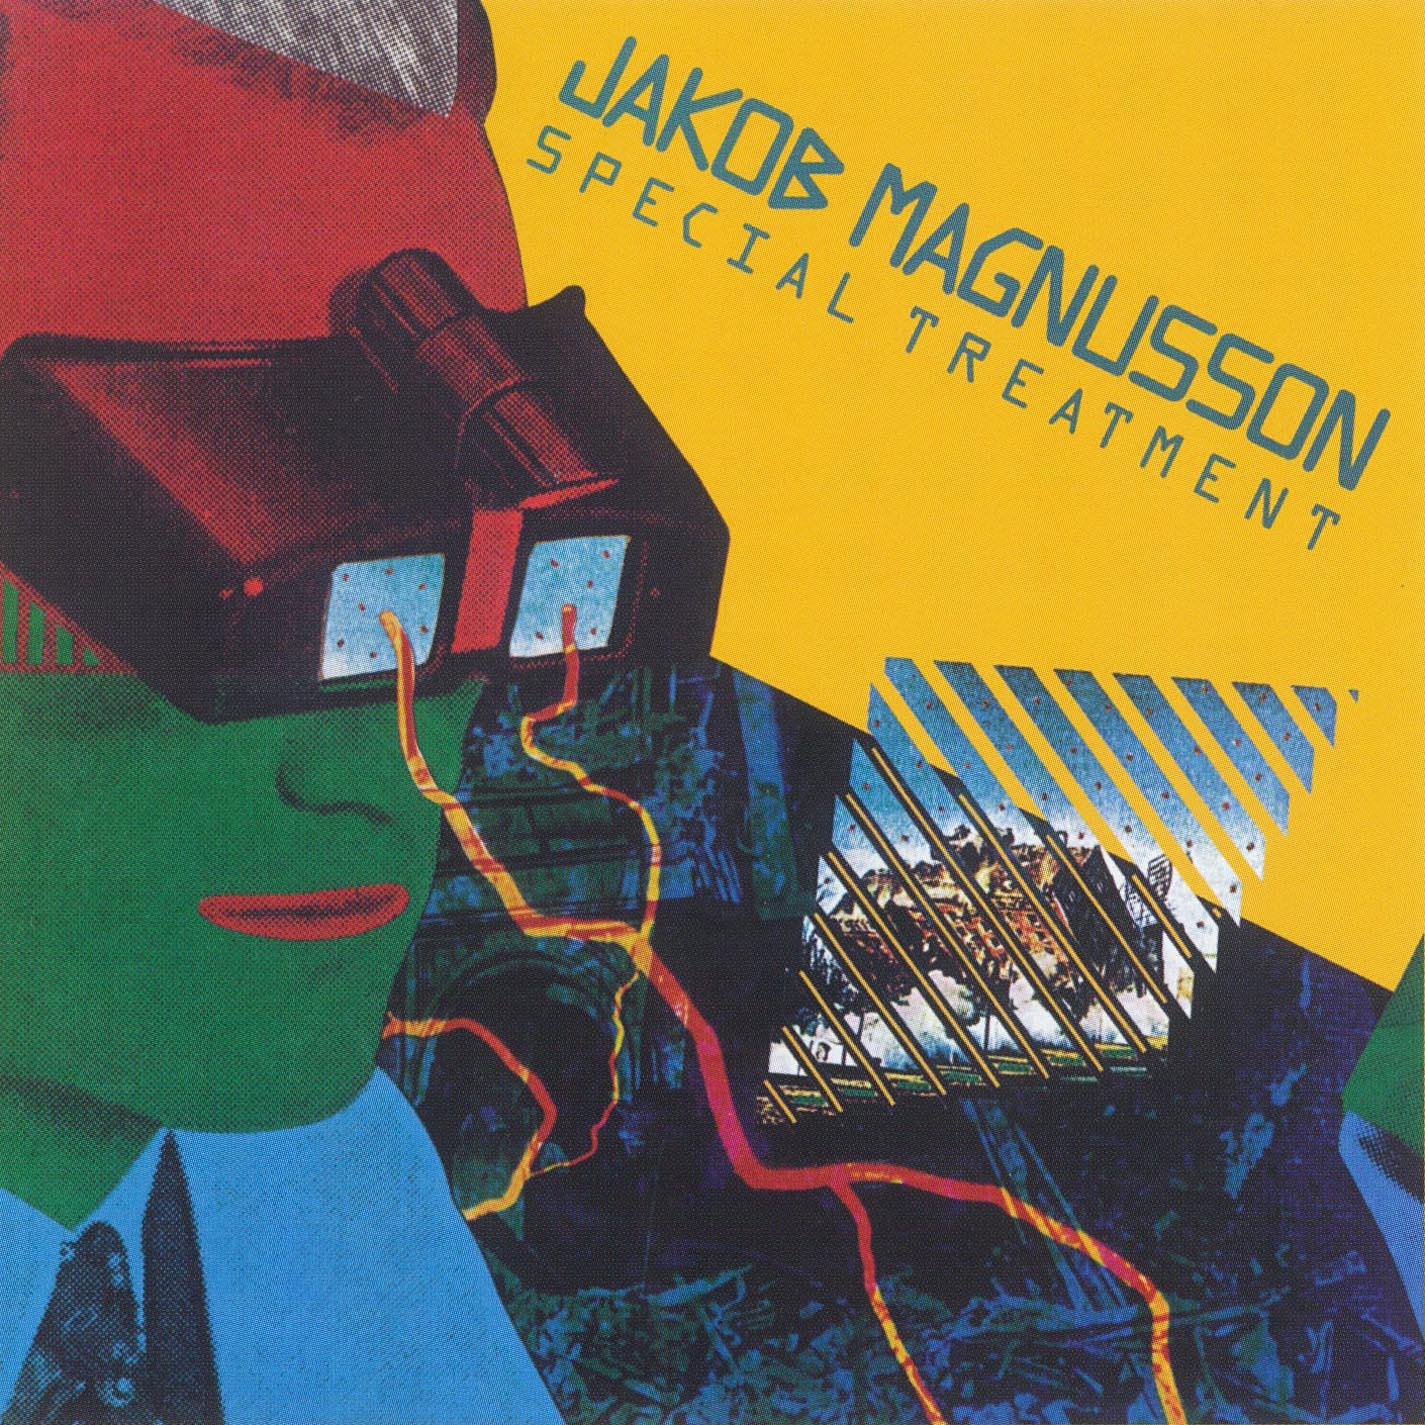 Jakob Magnusson - Special Treatment (Warner Bros., 1979). Cover art by Lou Beach.